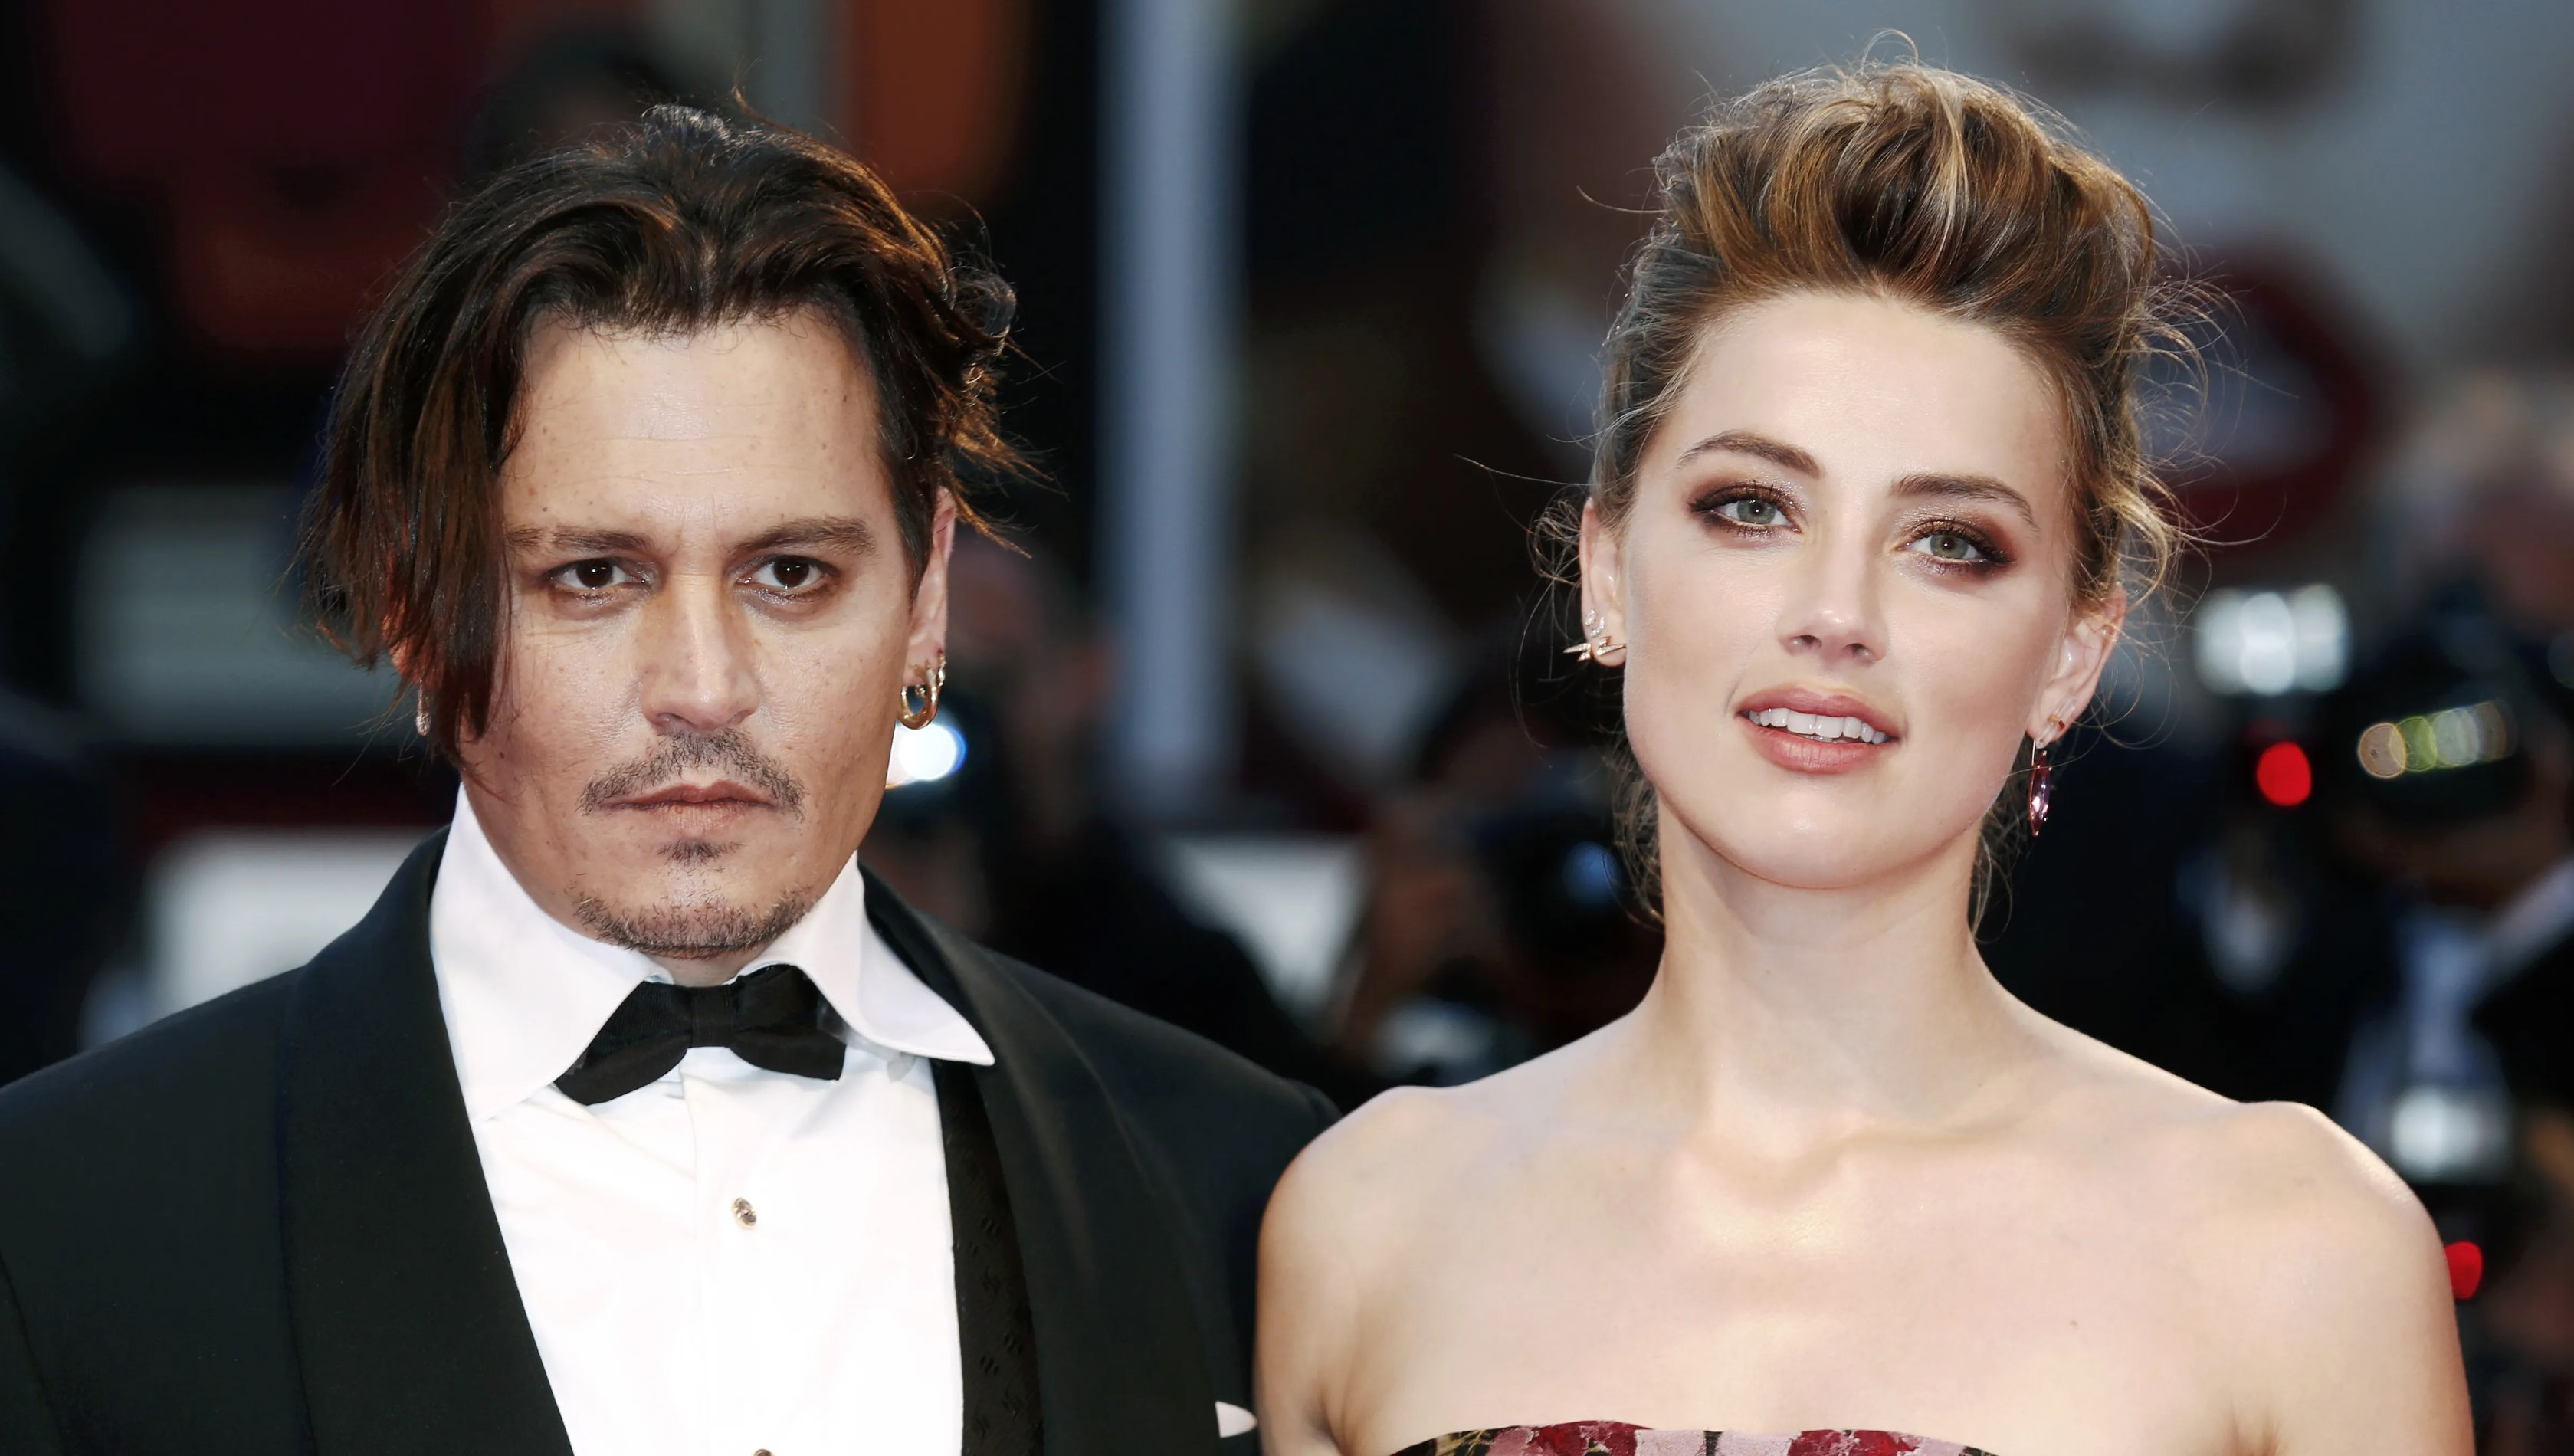 Johnny Depp and Amber Heard on red carpet years ago